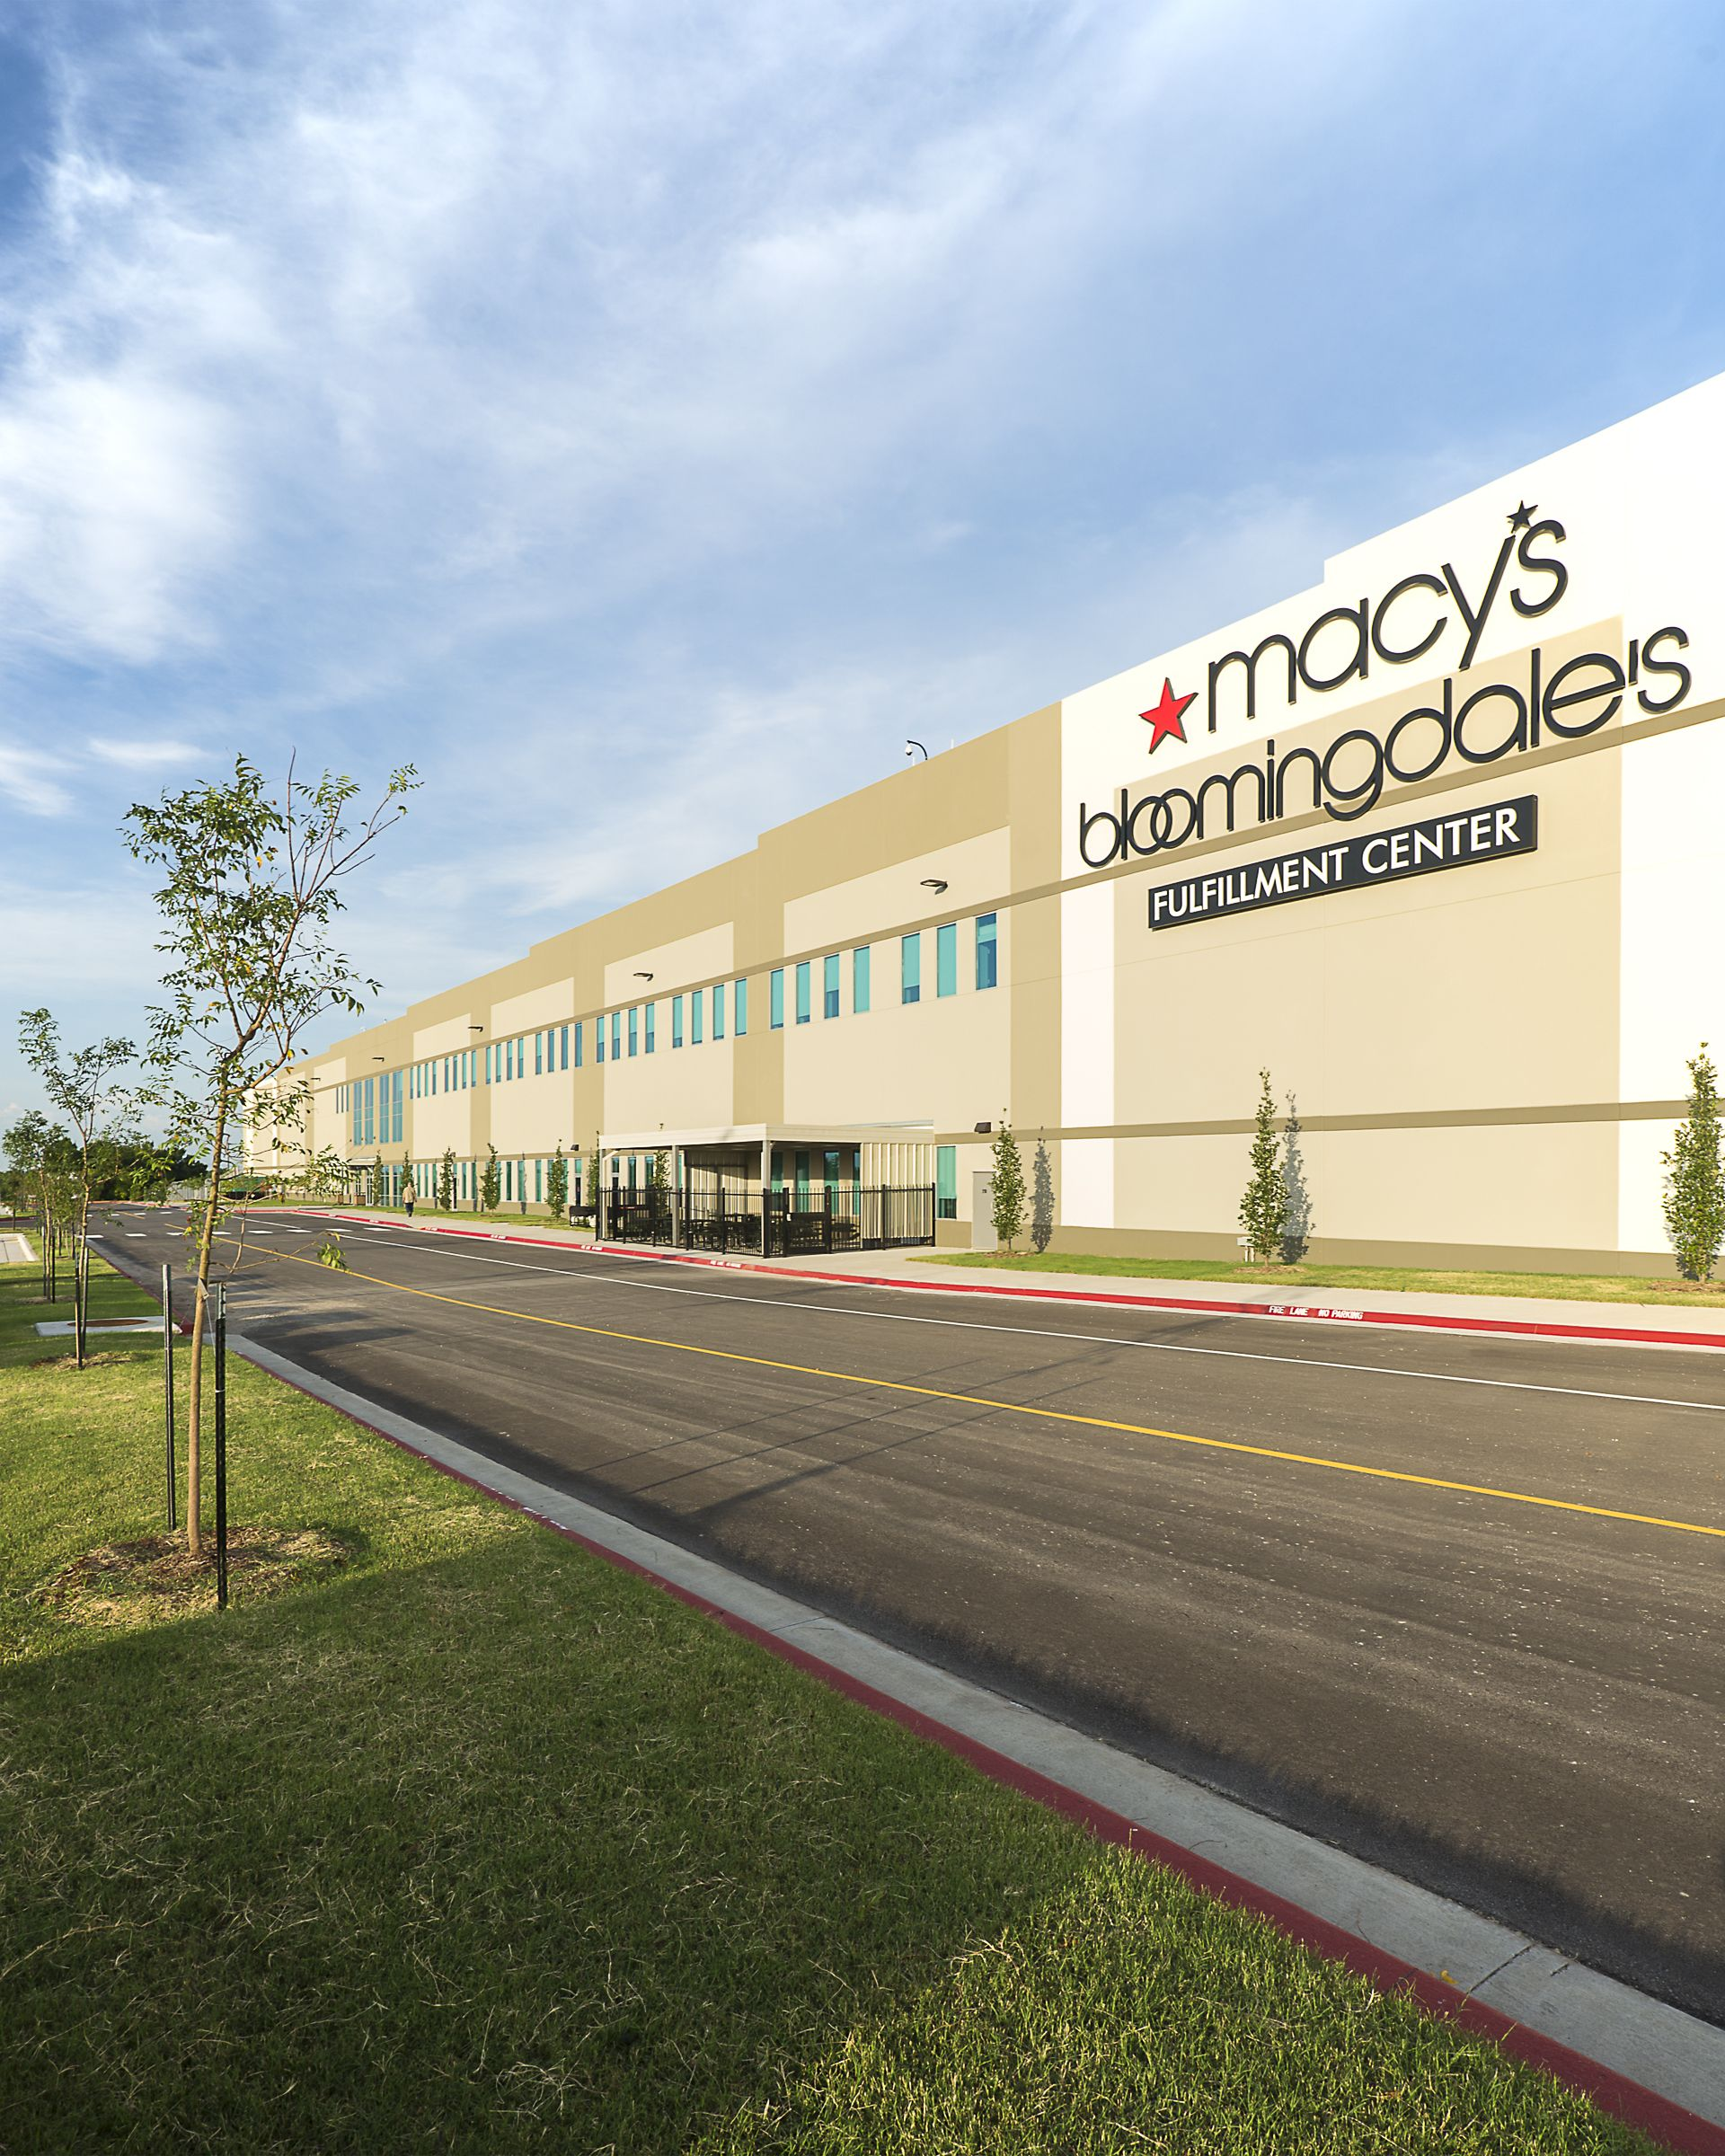 #WareMalcomb #Phoenix was mentioned in the Layton Construction newsletter about the new, 2 million square foot @Macy's Fulfillment Center in #Tulsa, #Oklahoma. Mutual #respect and #trust between the Layton and Ware Malcomb teams produced a seamless transition for Macy's.